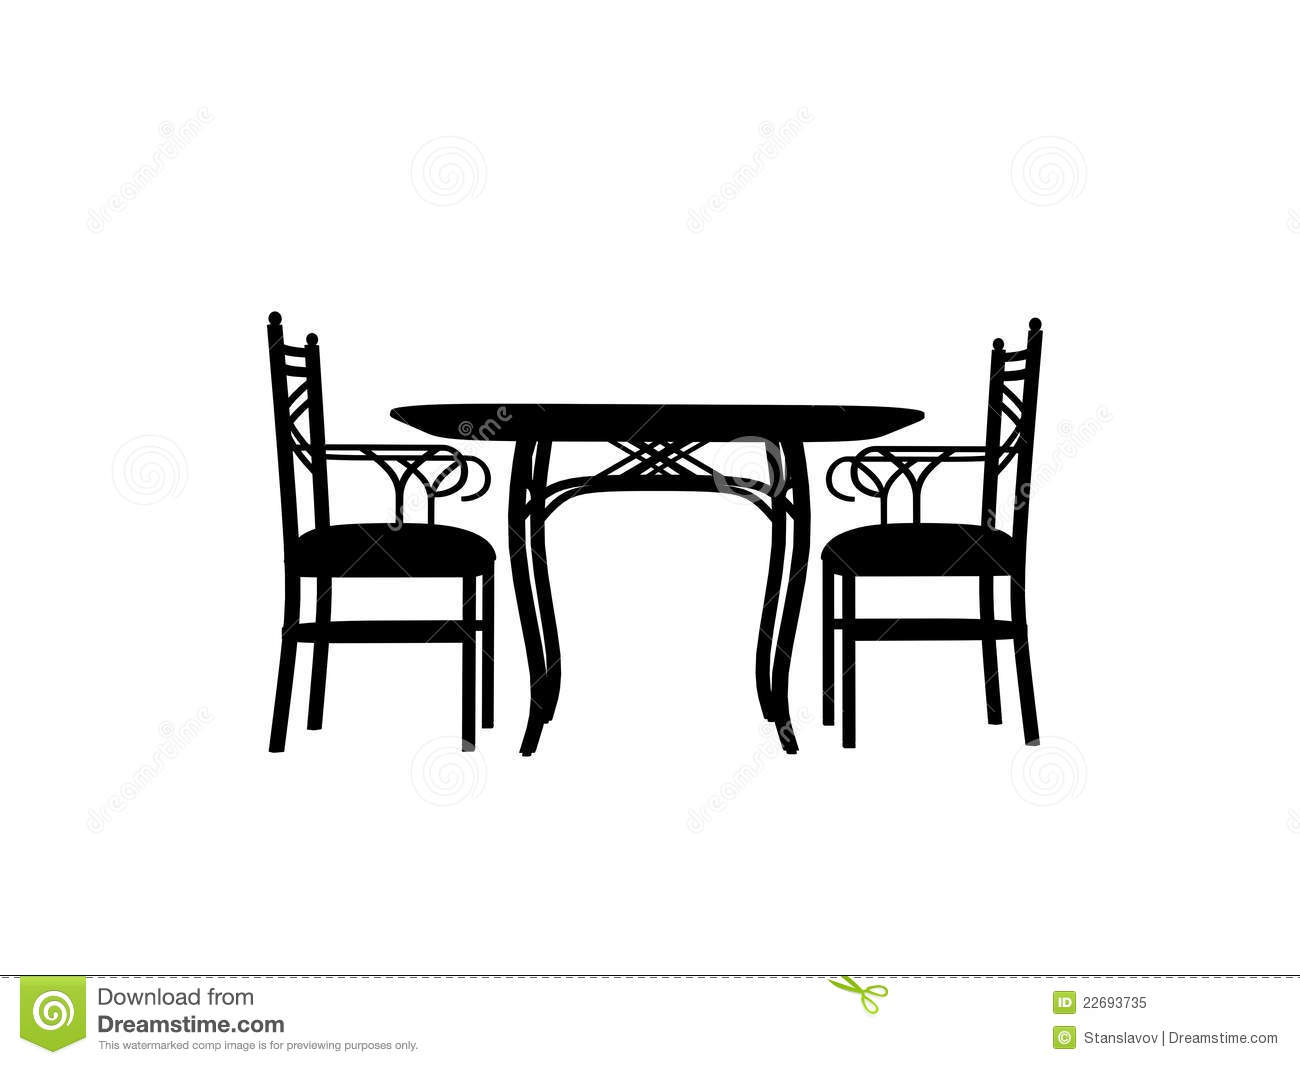 Cafe tables and chairs png - Chairs Outline Silhouette Table